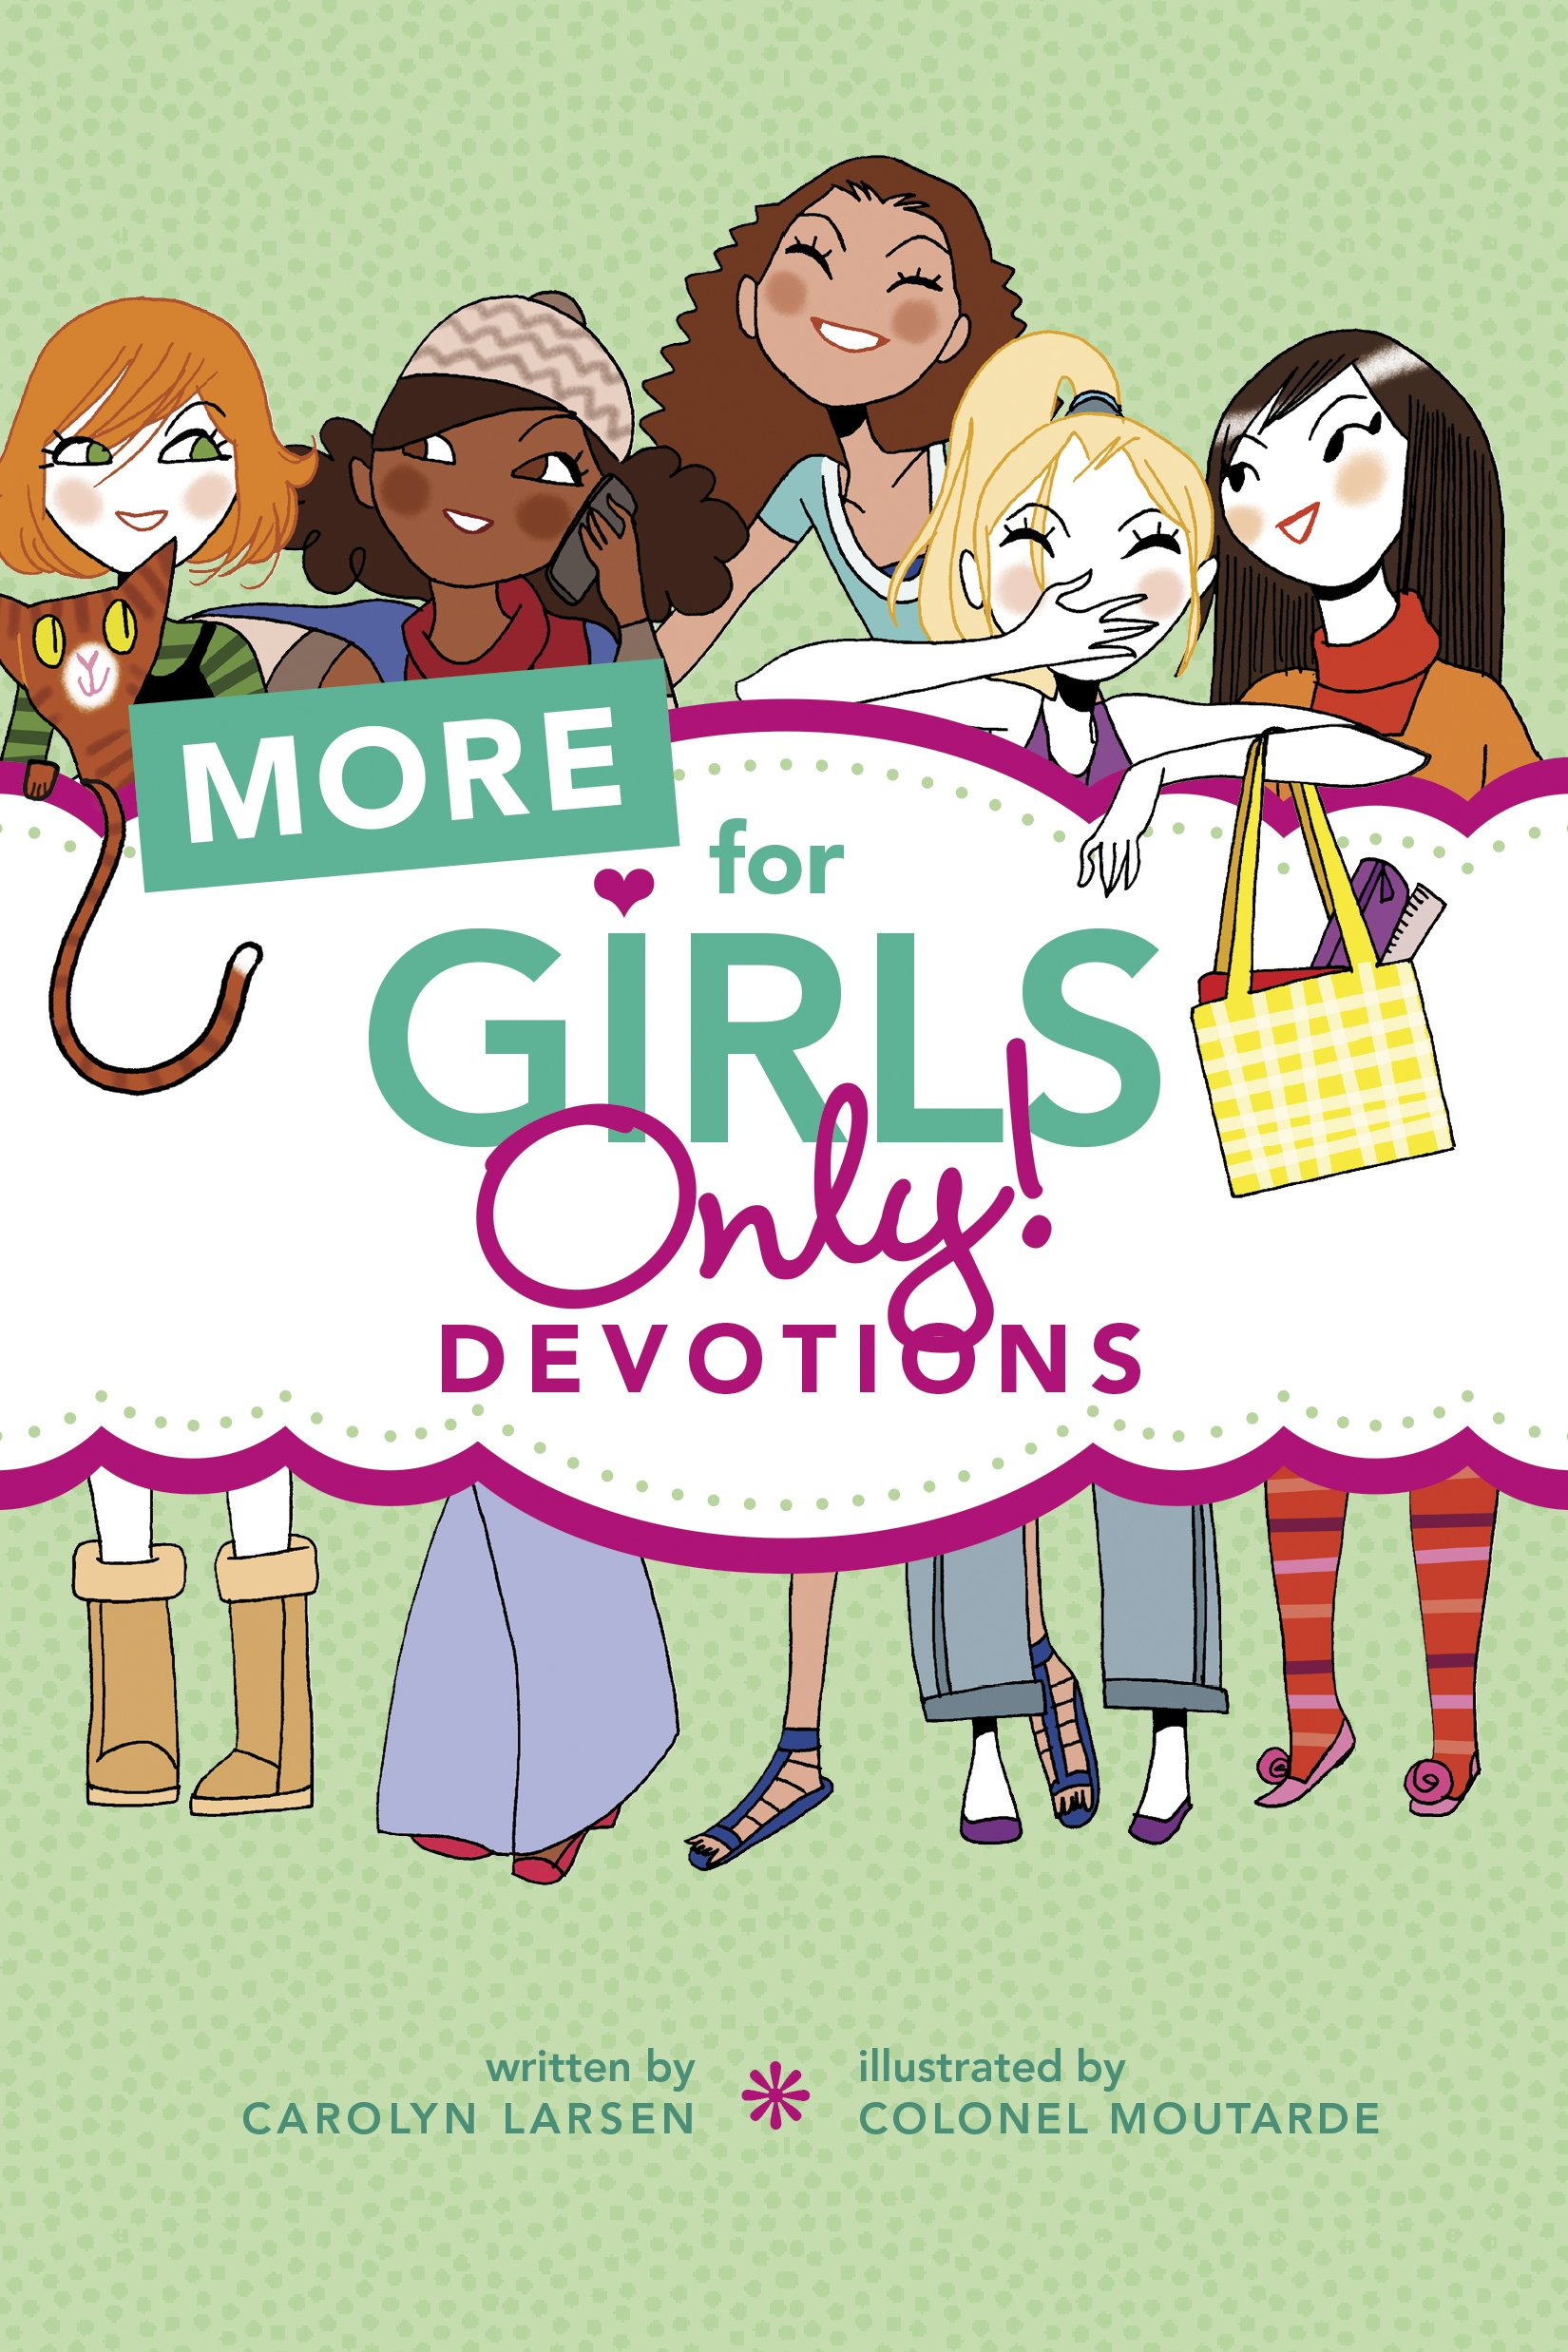 More for Girls Only Devotions: A Book Review